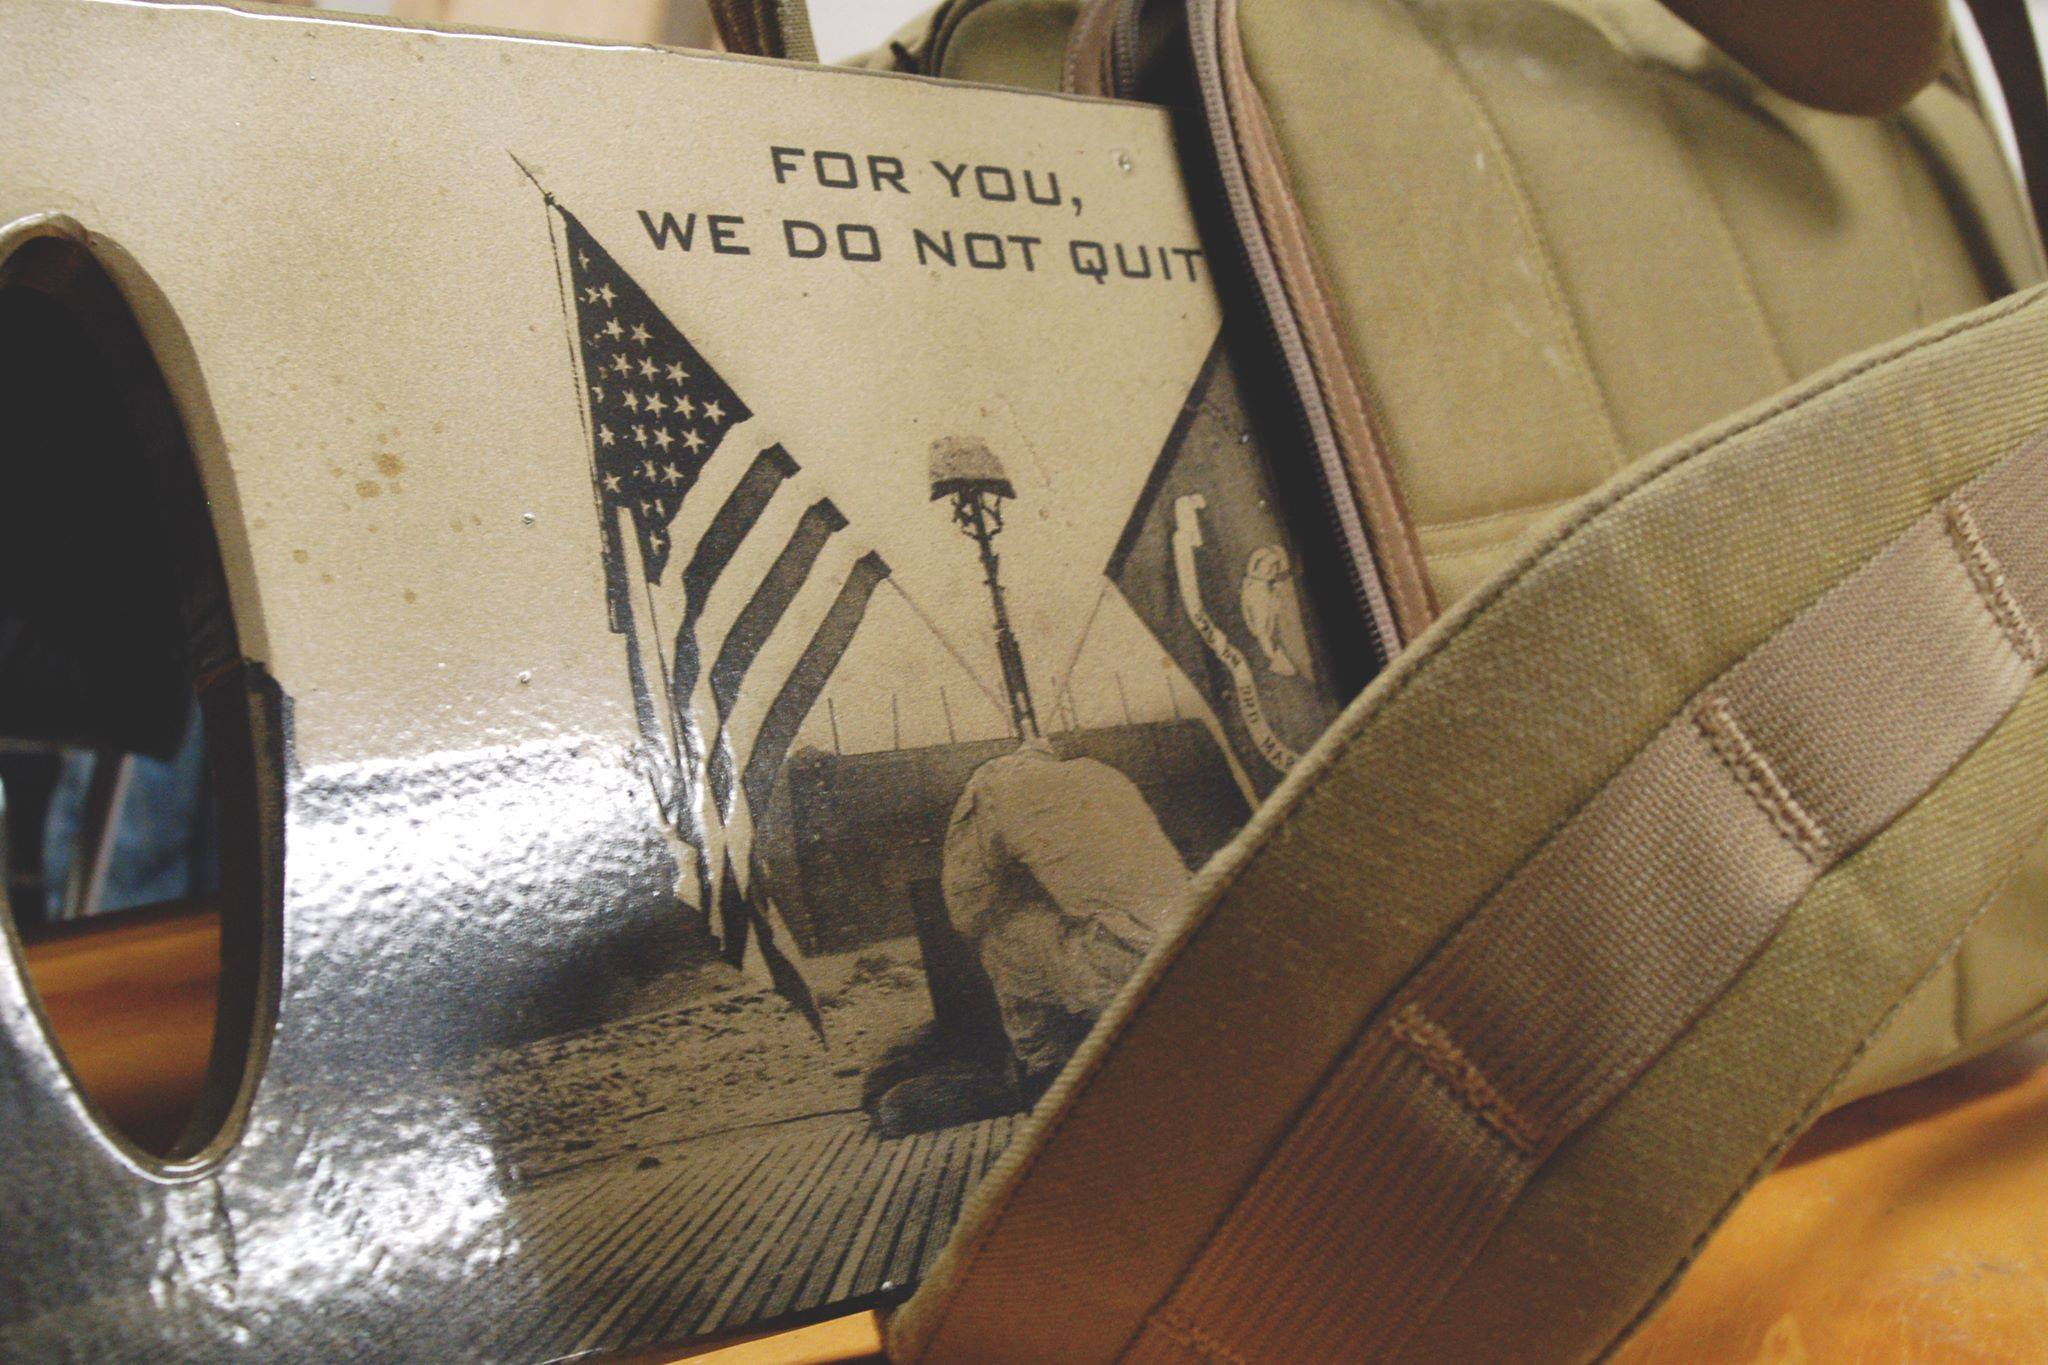 SHplates customized image on steel ruck plates